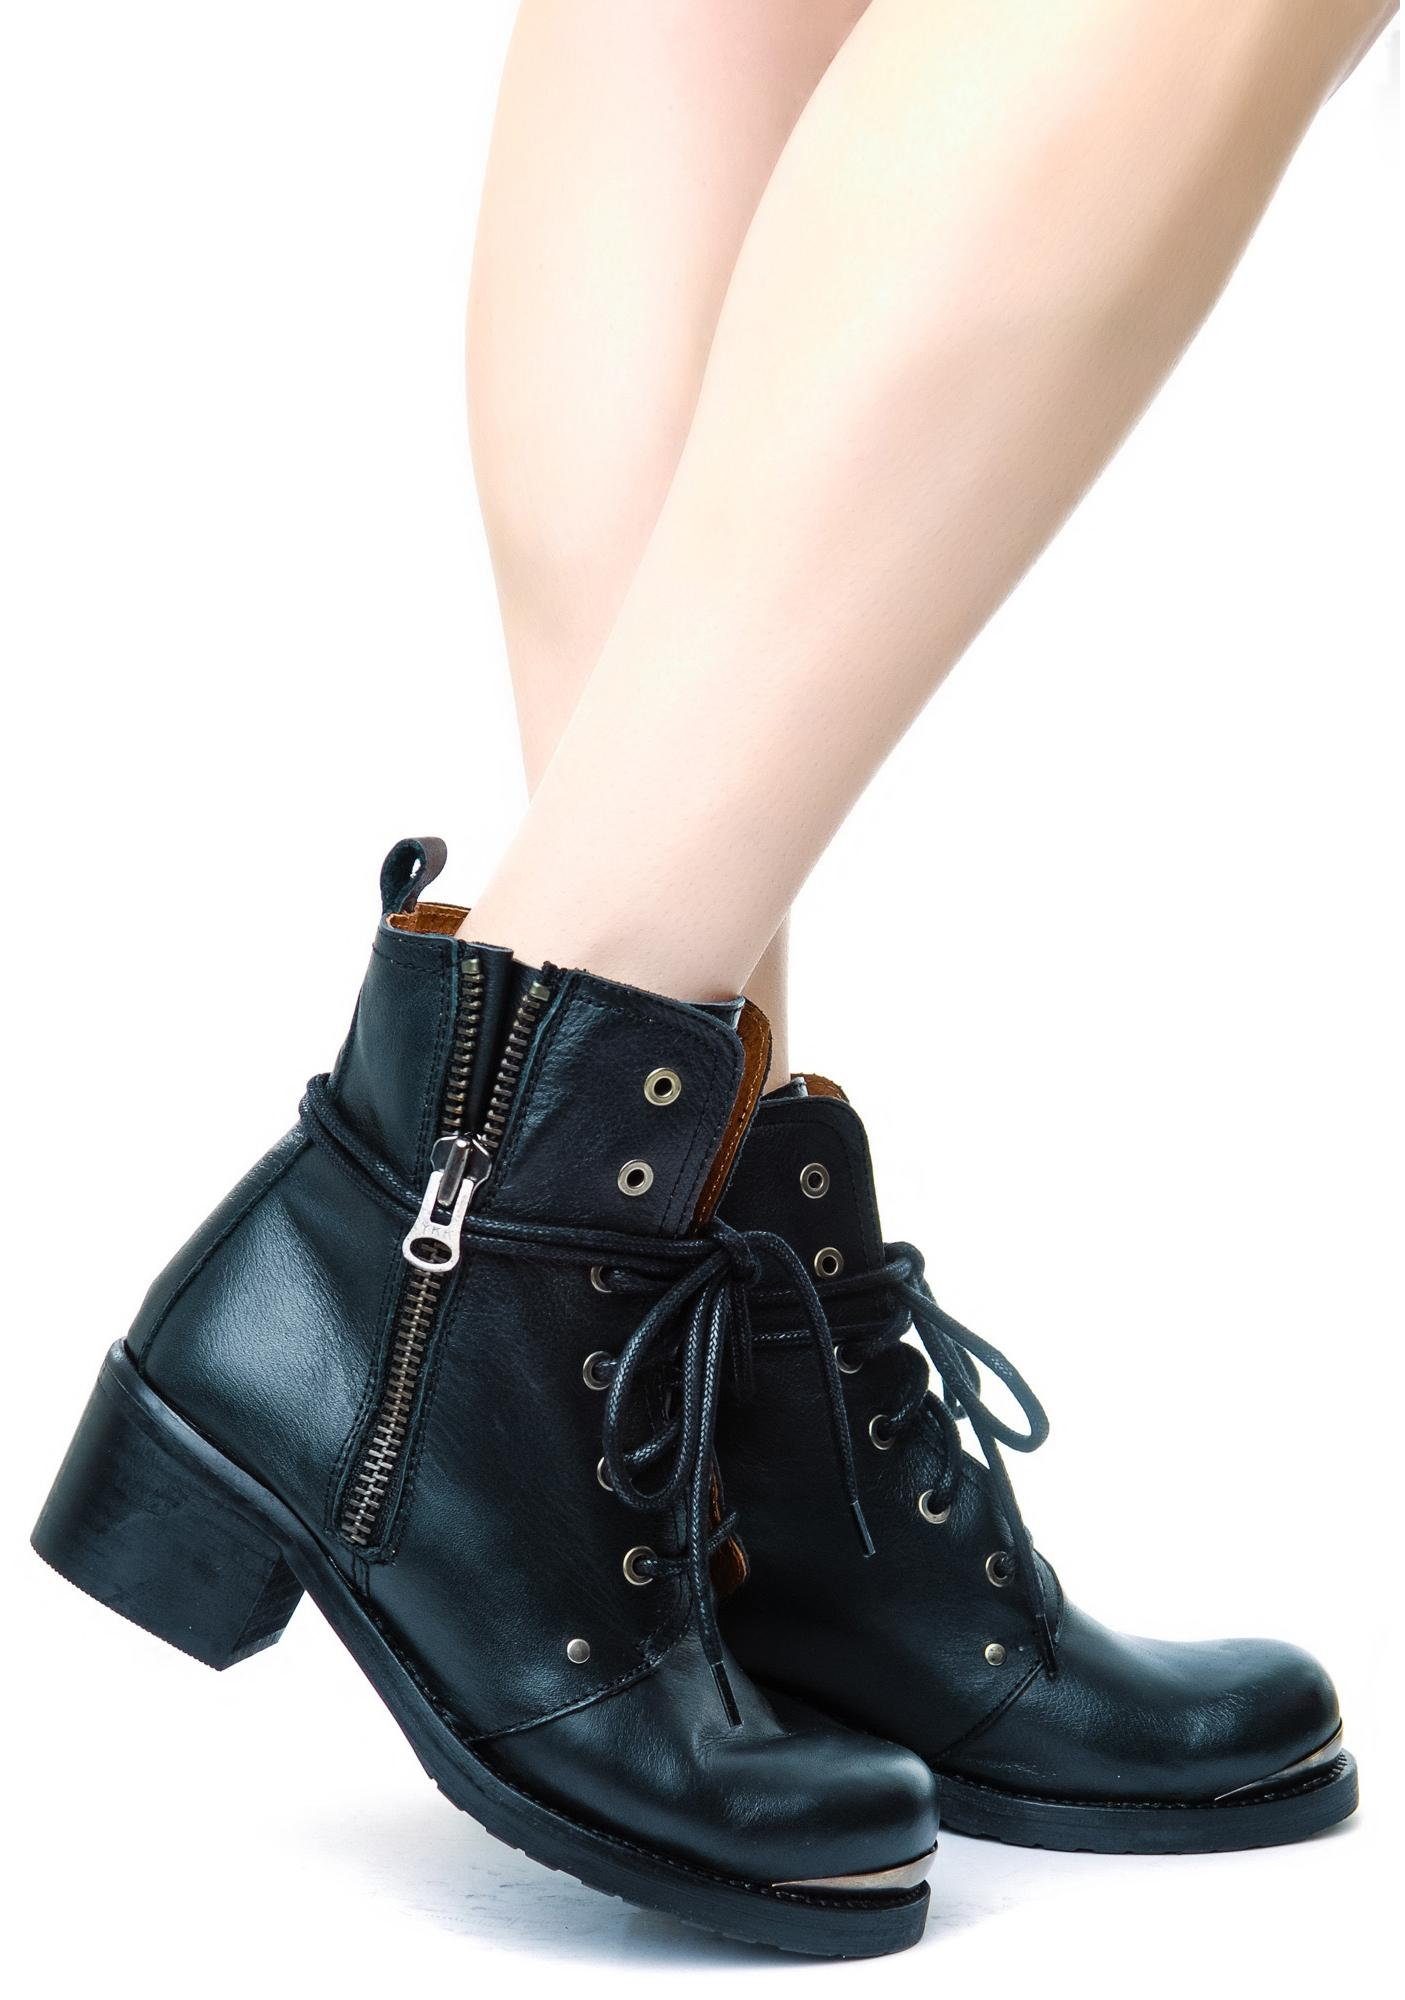 SixtySeven/MTNG Dani Floater Lace Up Boots